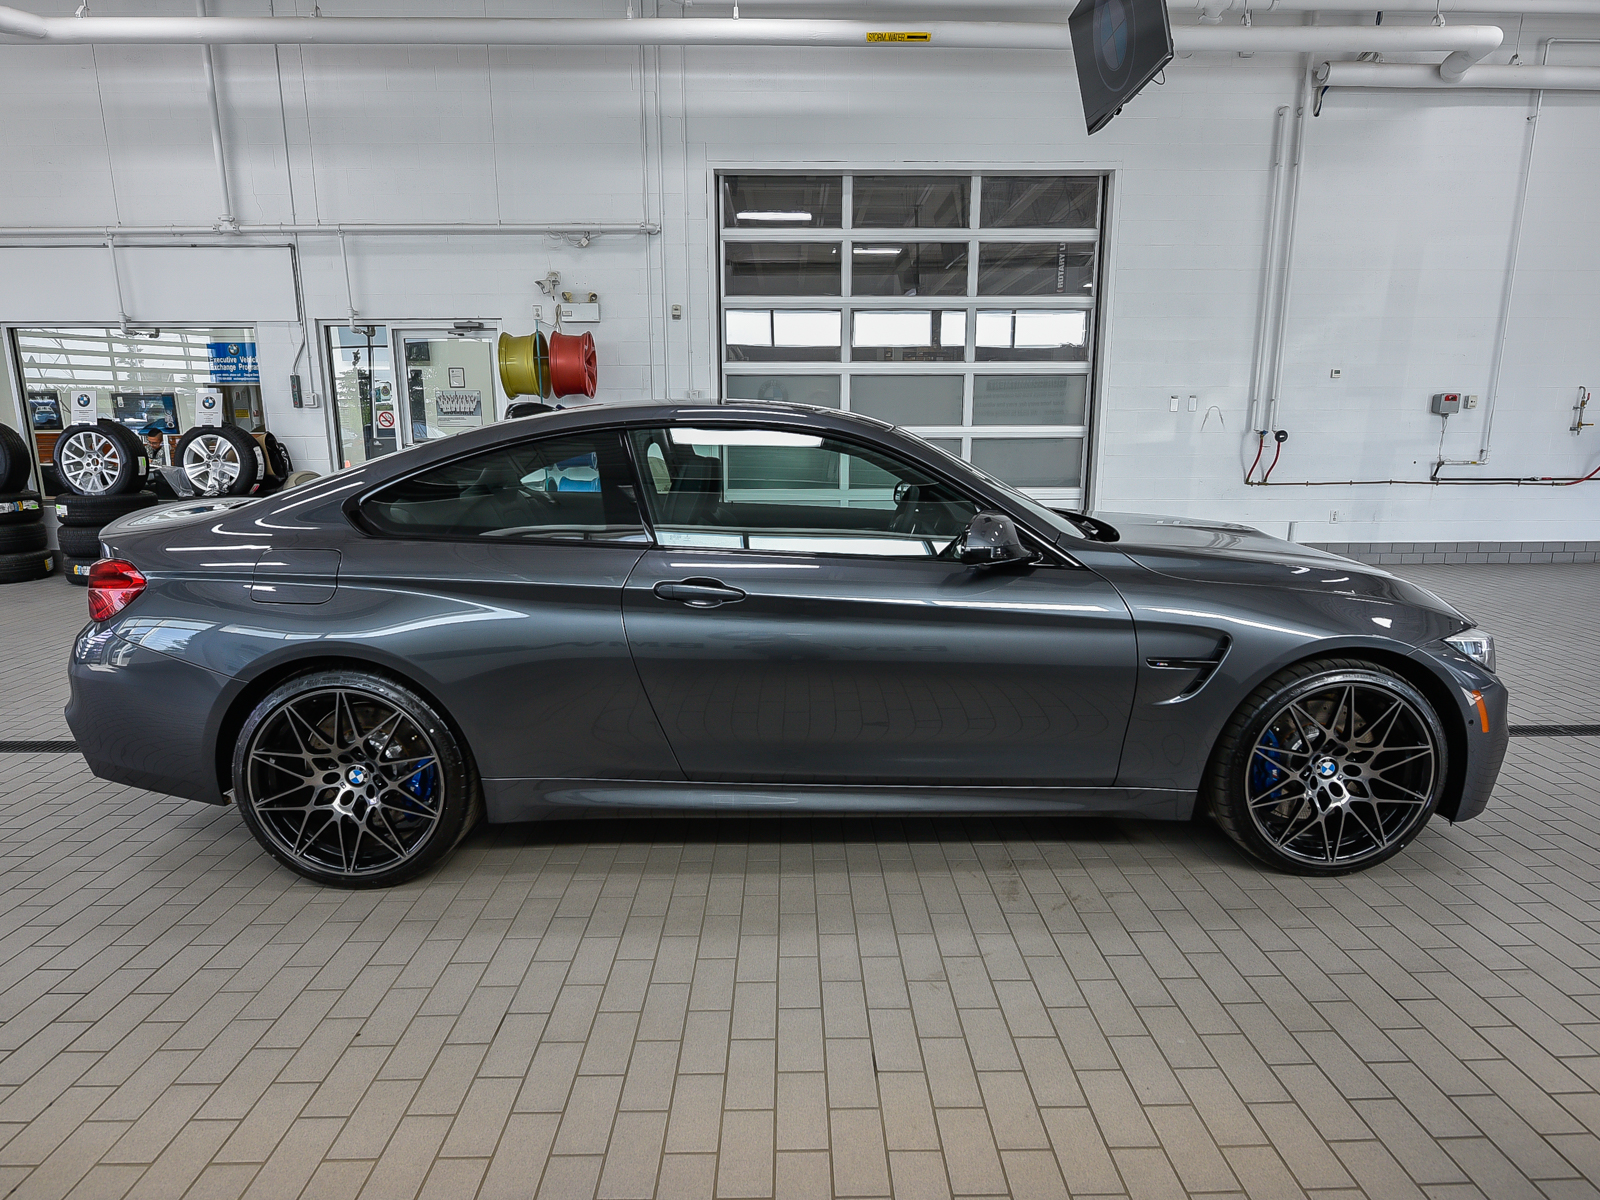 New 2018 BMW M4 Coupe Coupe in Edmonton 18M